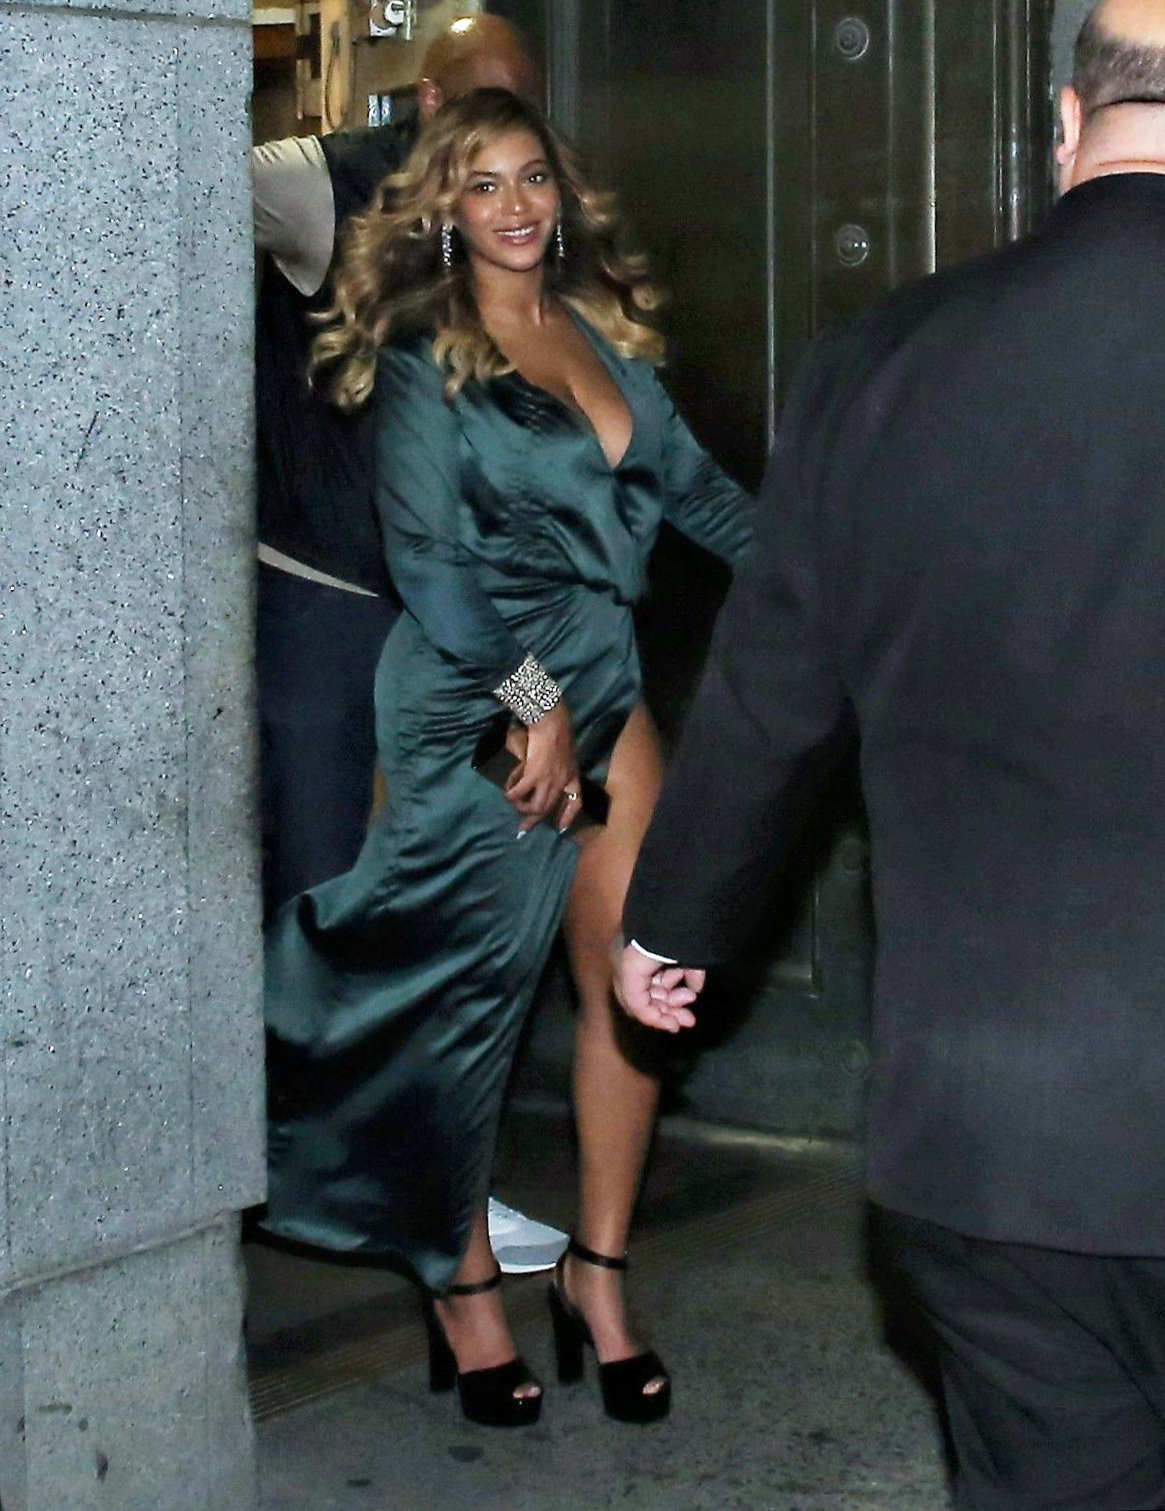 Stepping out for her first red carpet event since giving birth to twins, Beyonce is gorgeous in her green dress as she and hubby Jay Z attend Rihanna's Diamond Ball in NYC. September 14, 2017 Nichole/X17online.com